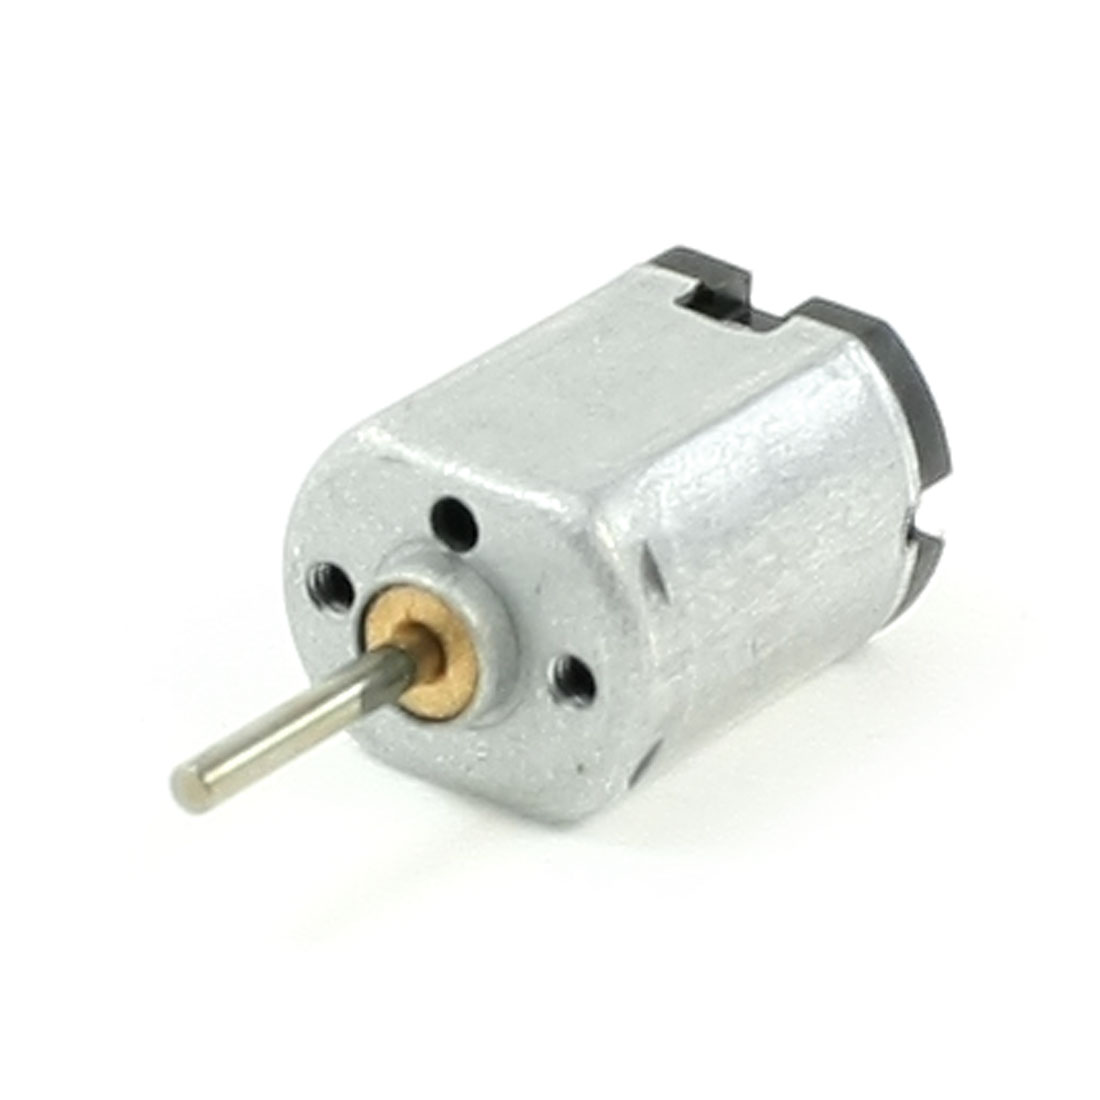 1mm-Shaft-Electric-Micro-Motor-19000RPM-DC-3V-0-03A-K10-for-DIY-Smart-Car